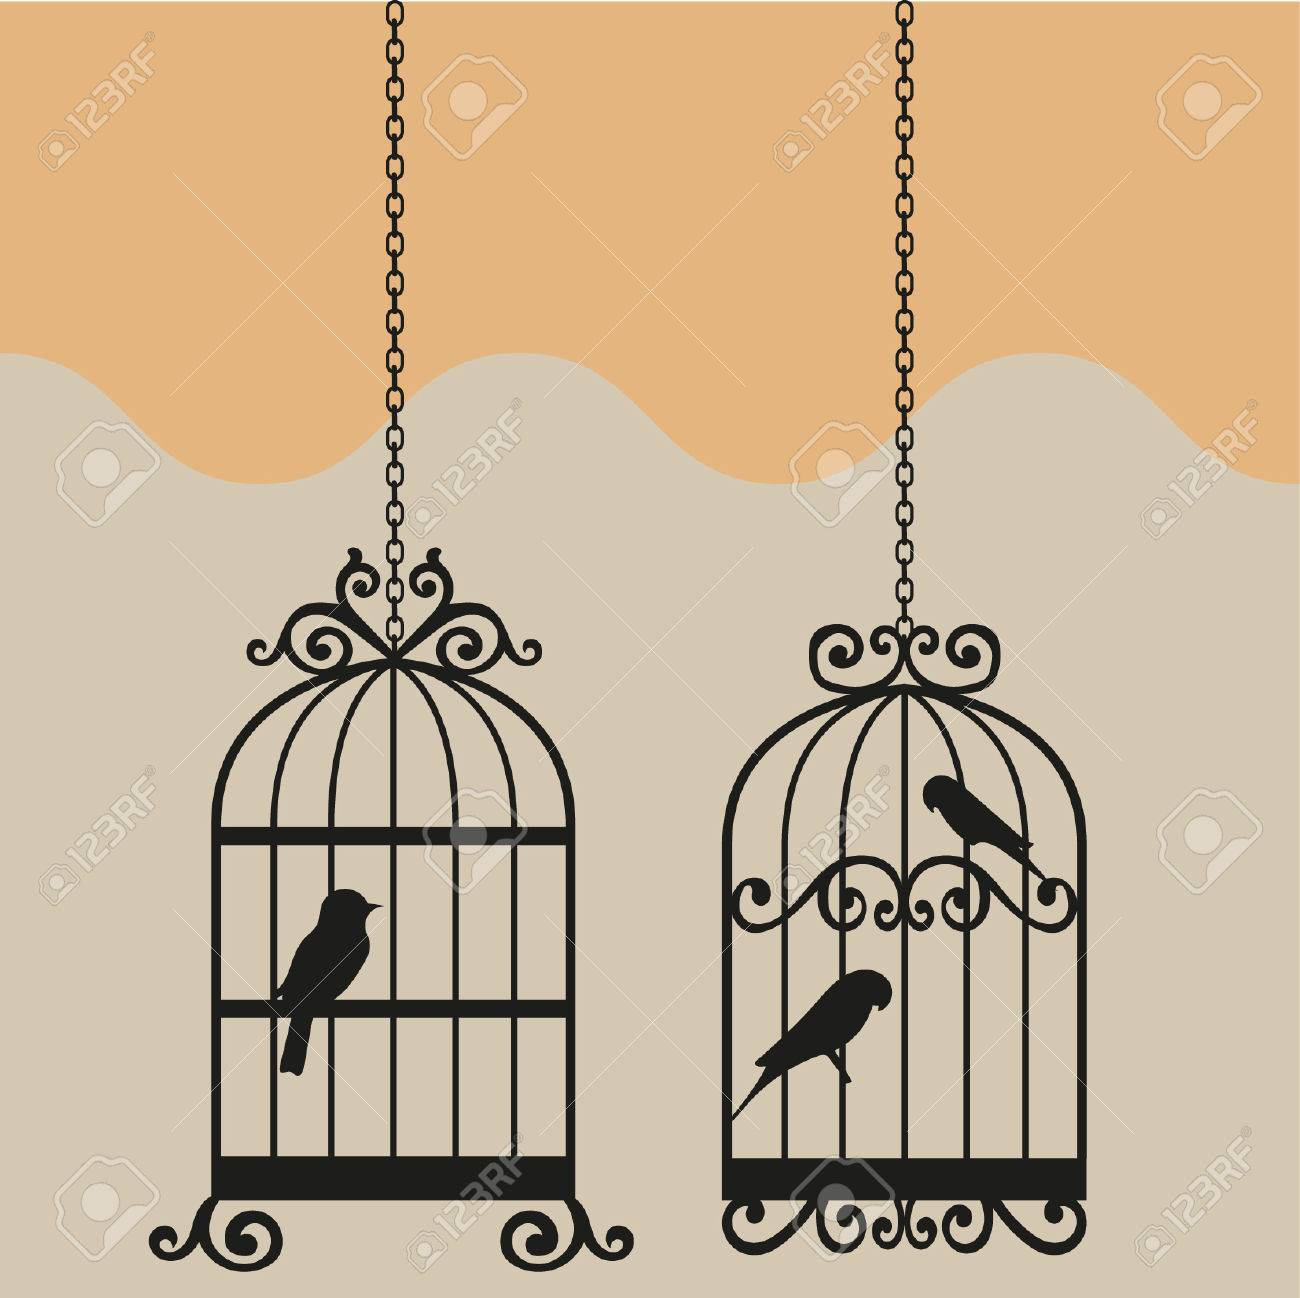 vintage bird cage vector illustration royalty free cliparts